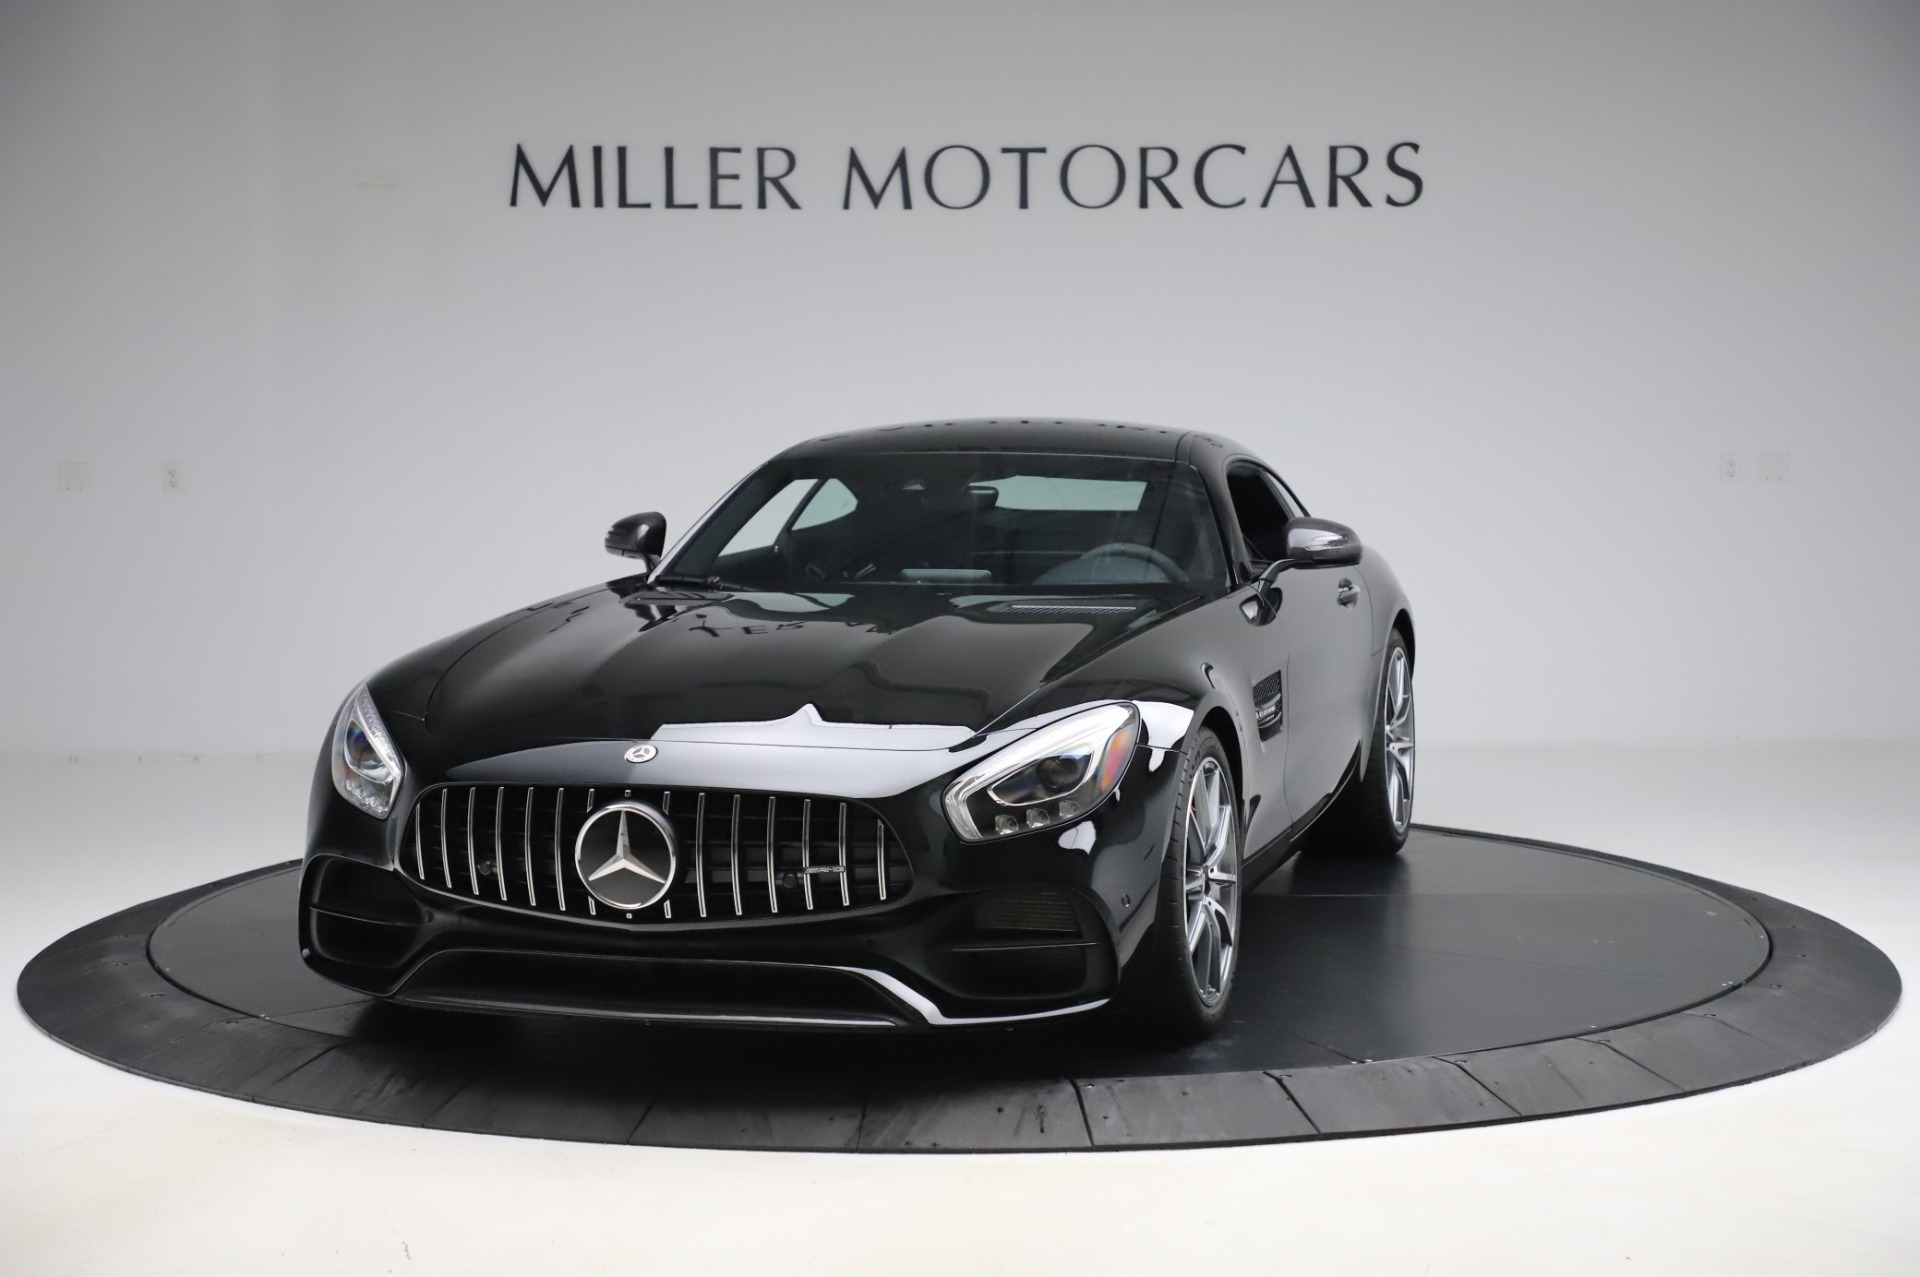 Used 2018 Mercedes-Benz AMG GT S for sale $103,900 at Bentley Greenwich in Greenwich CT 06830 1